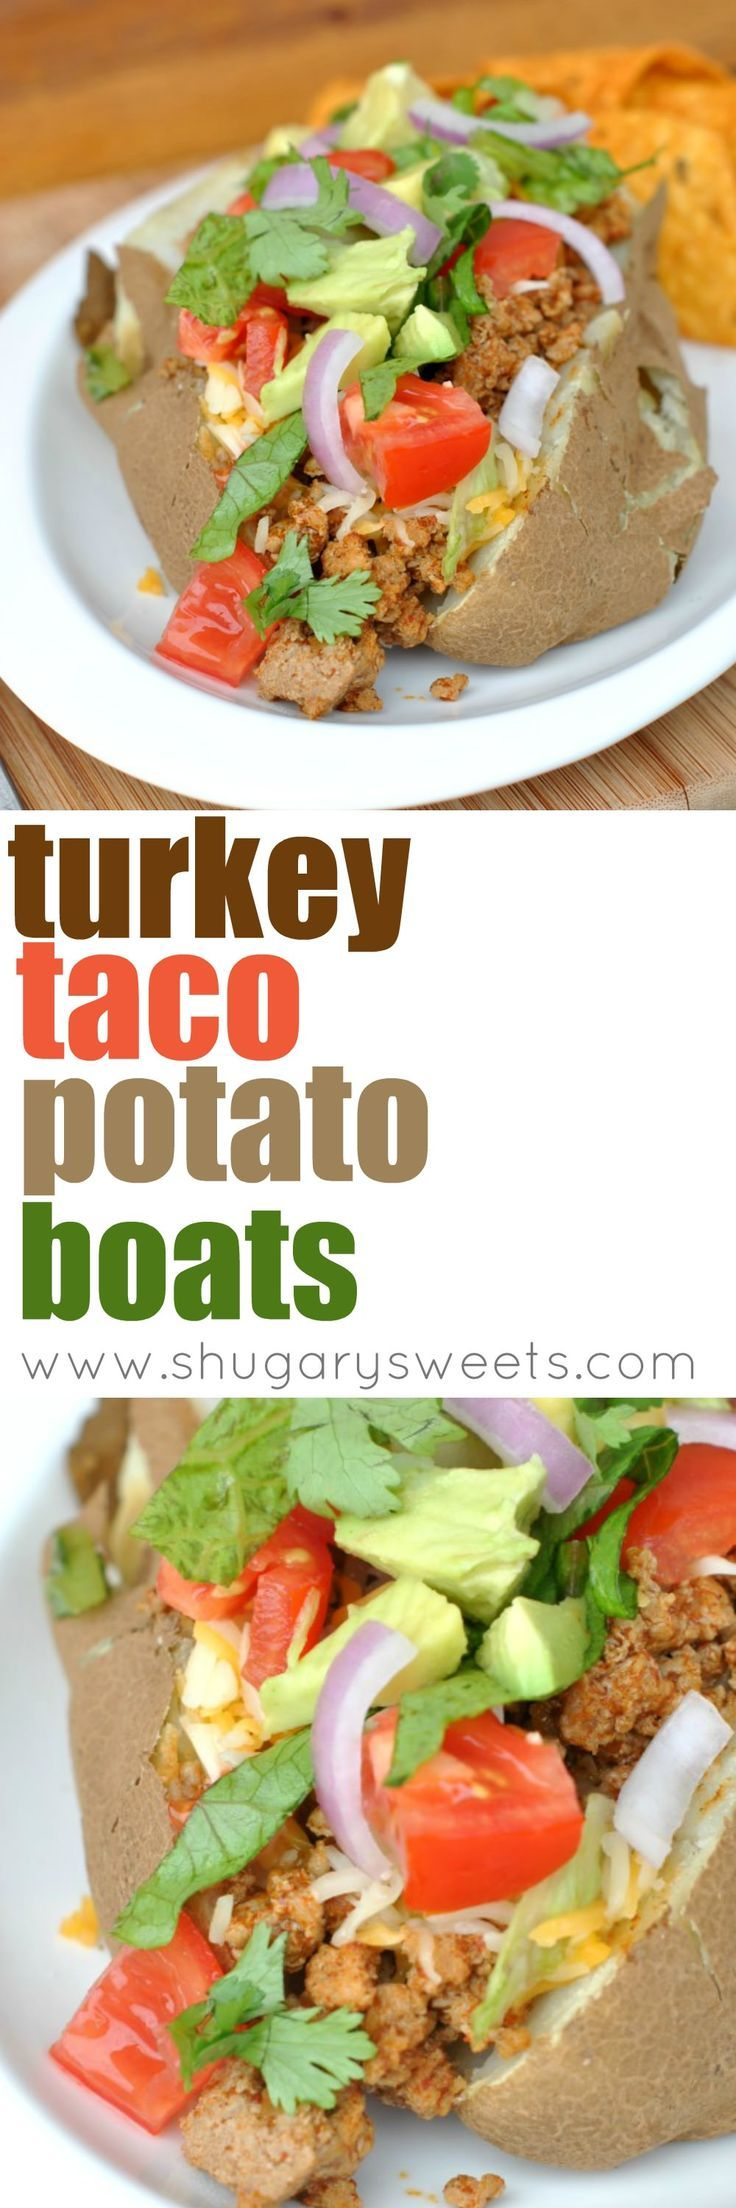 Looking for a delicious, easy dinner idea? Try combining a classic baked potato with taco seasoned ground turkey! Don't forget all the toppings!